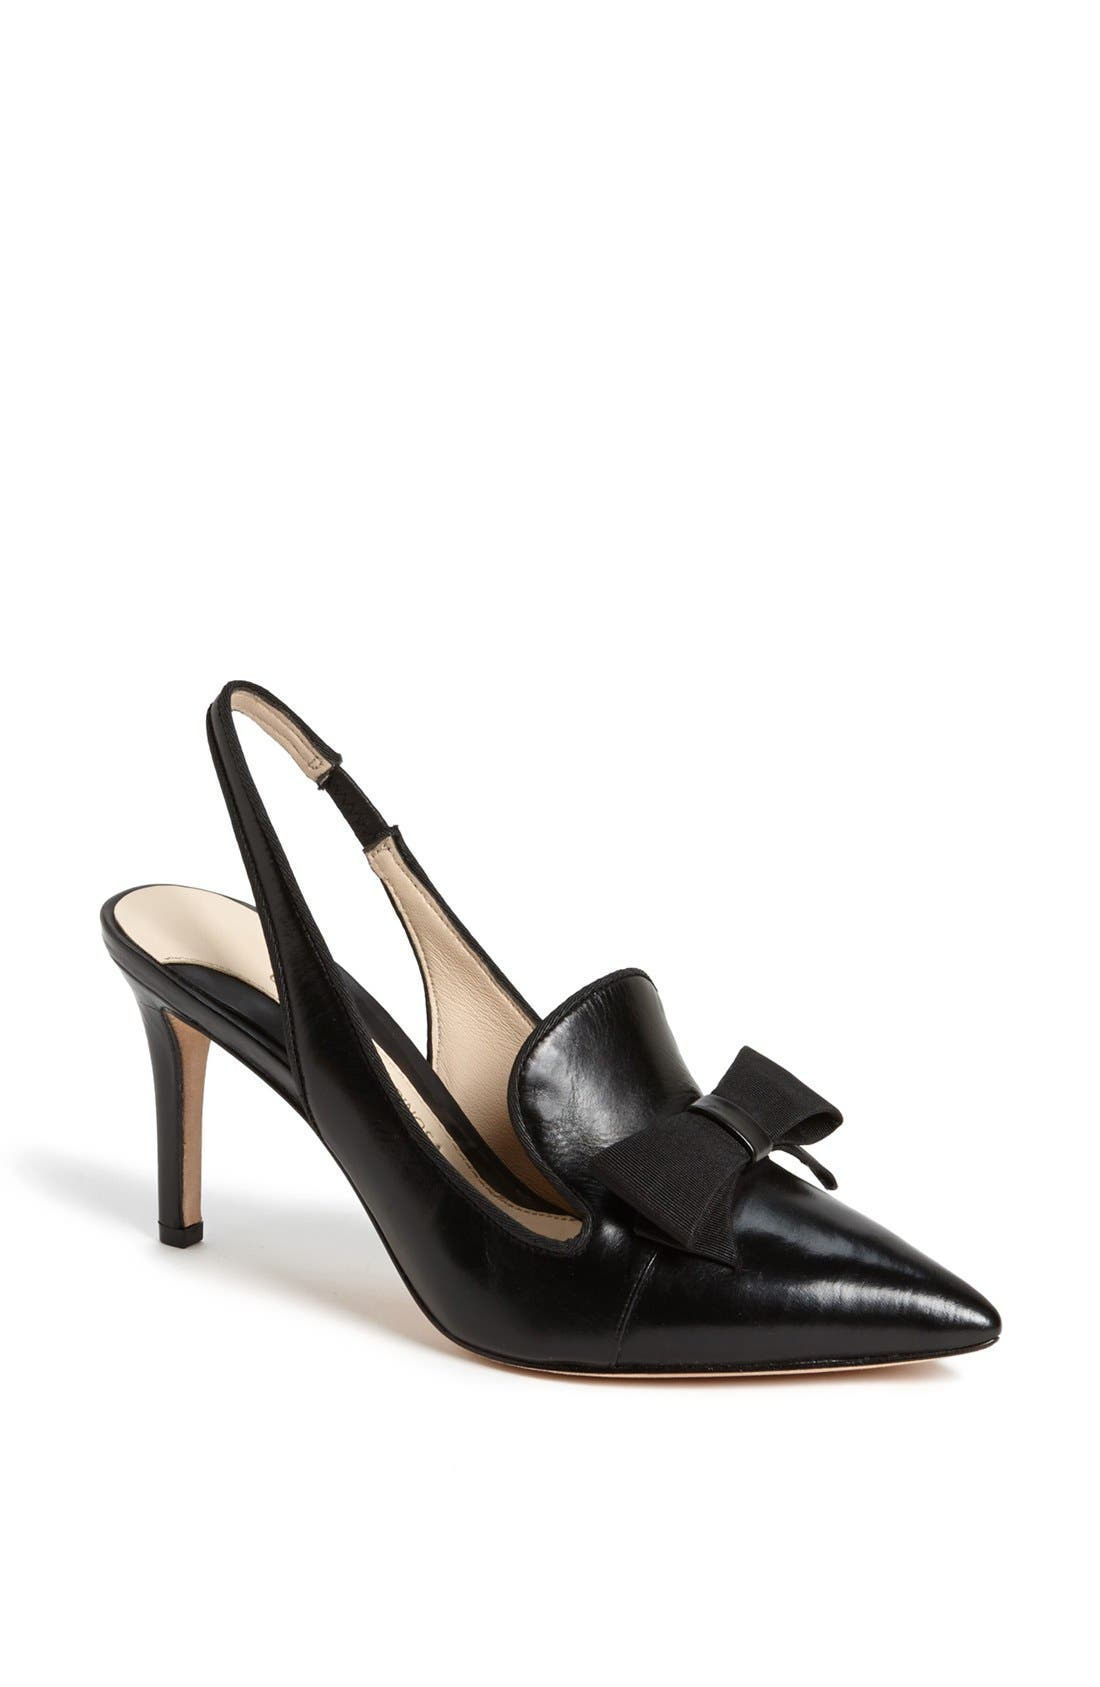 Alternate Image 1 Selected - Carolinna Espinosa 'Sylvie' Pump